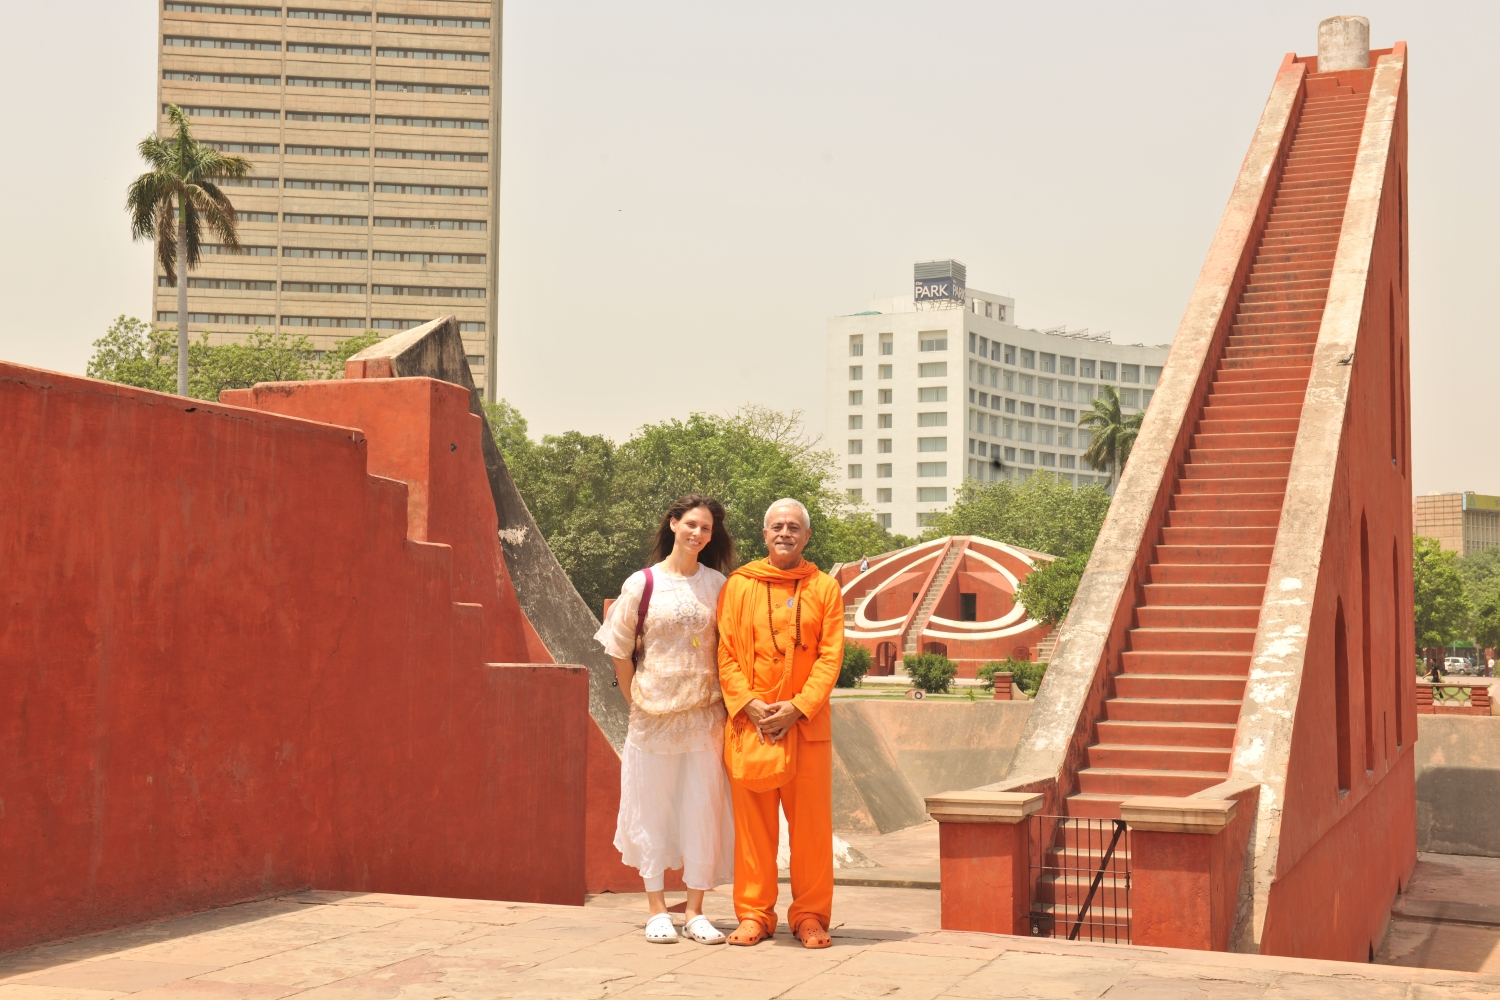 Jantar Mantar, Dillí, India - 2011, April